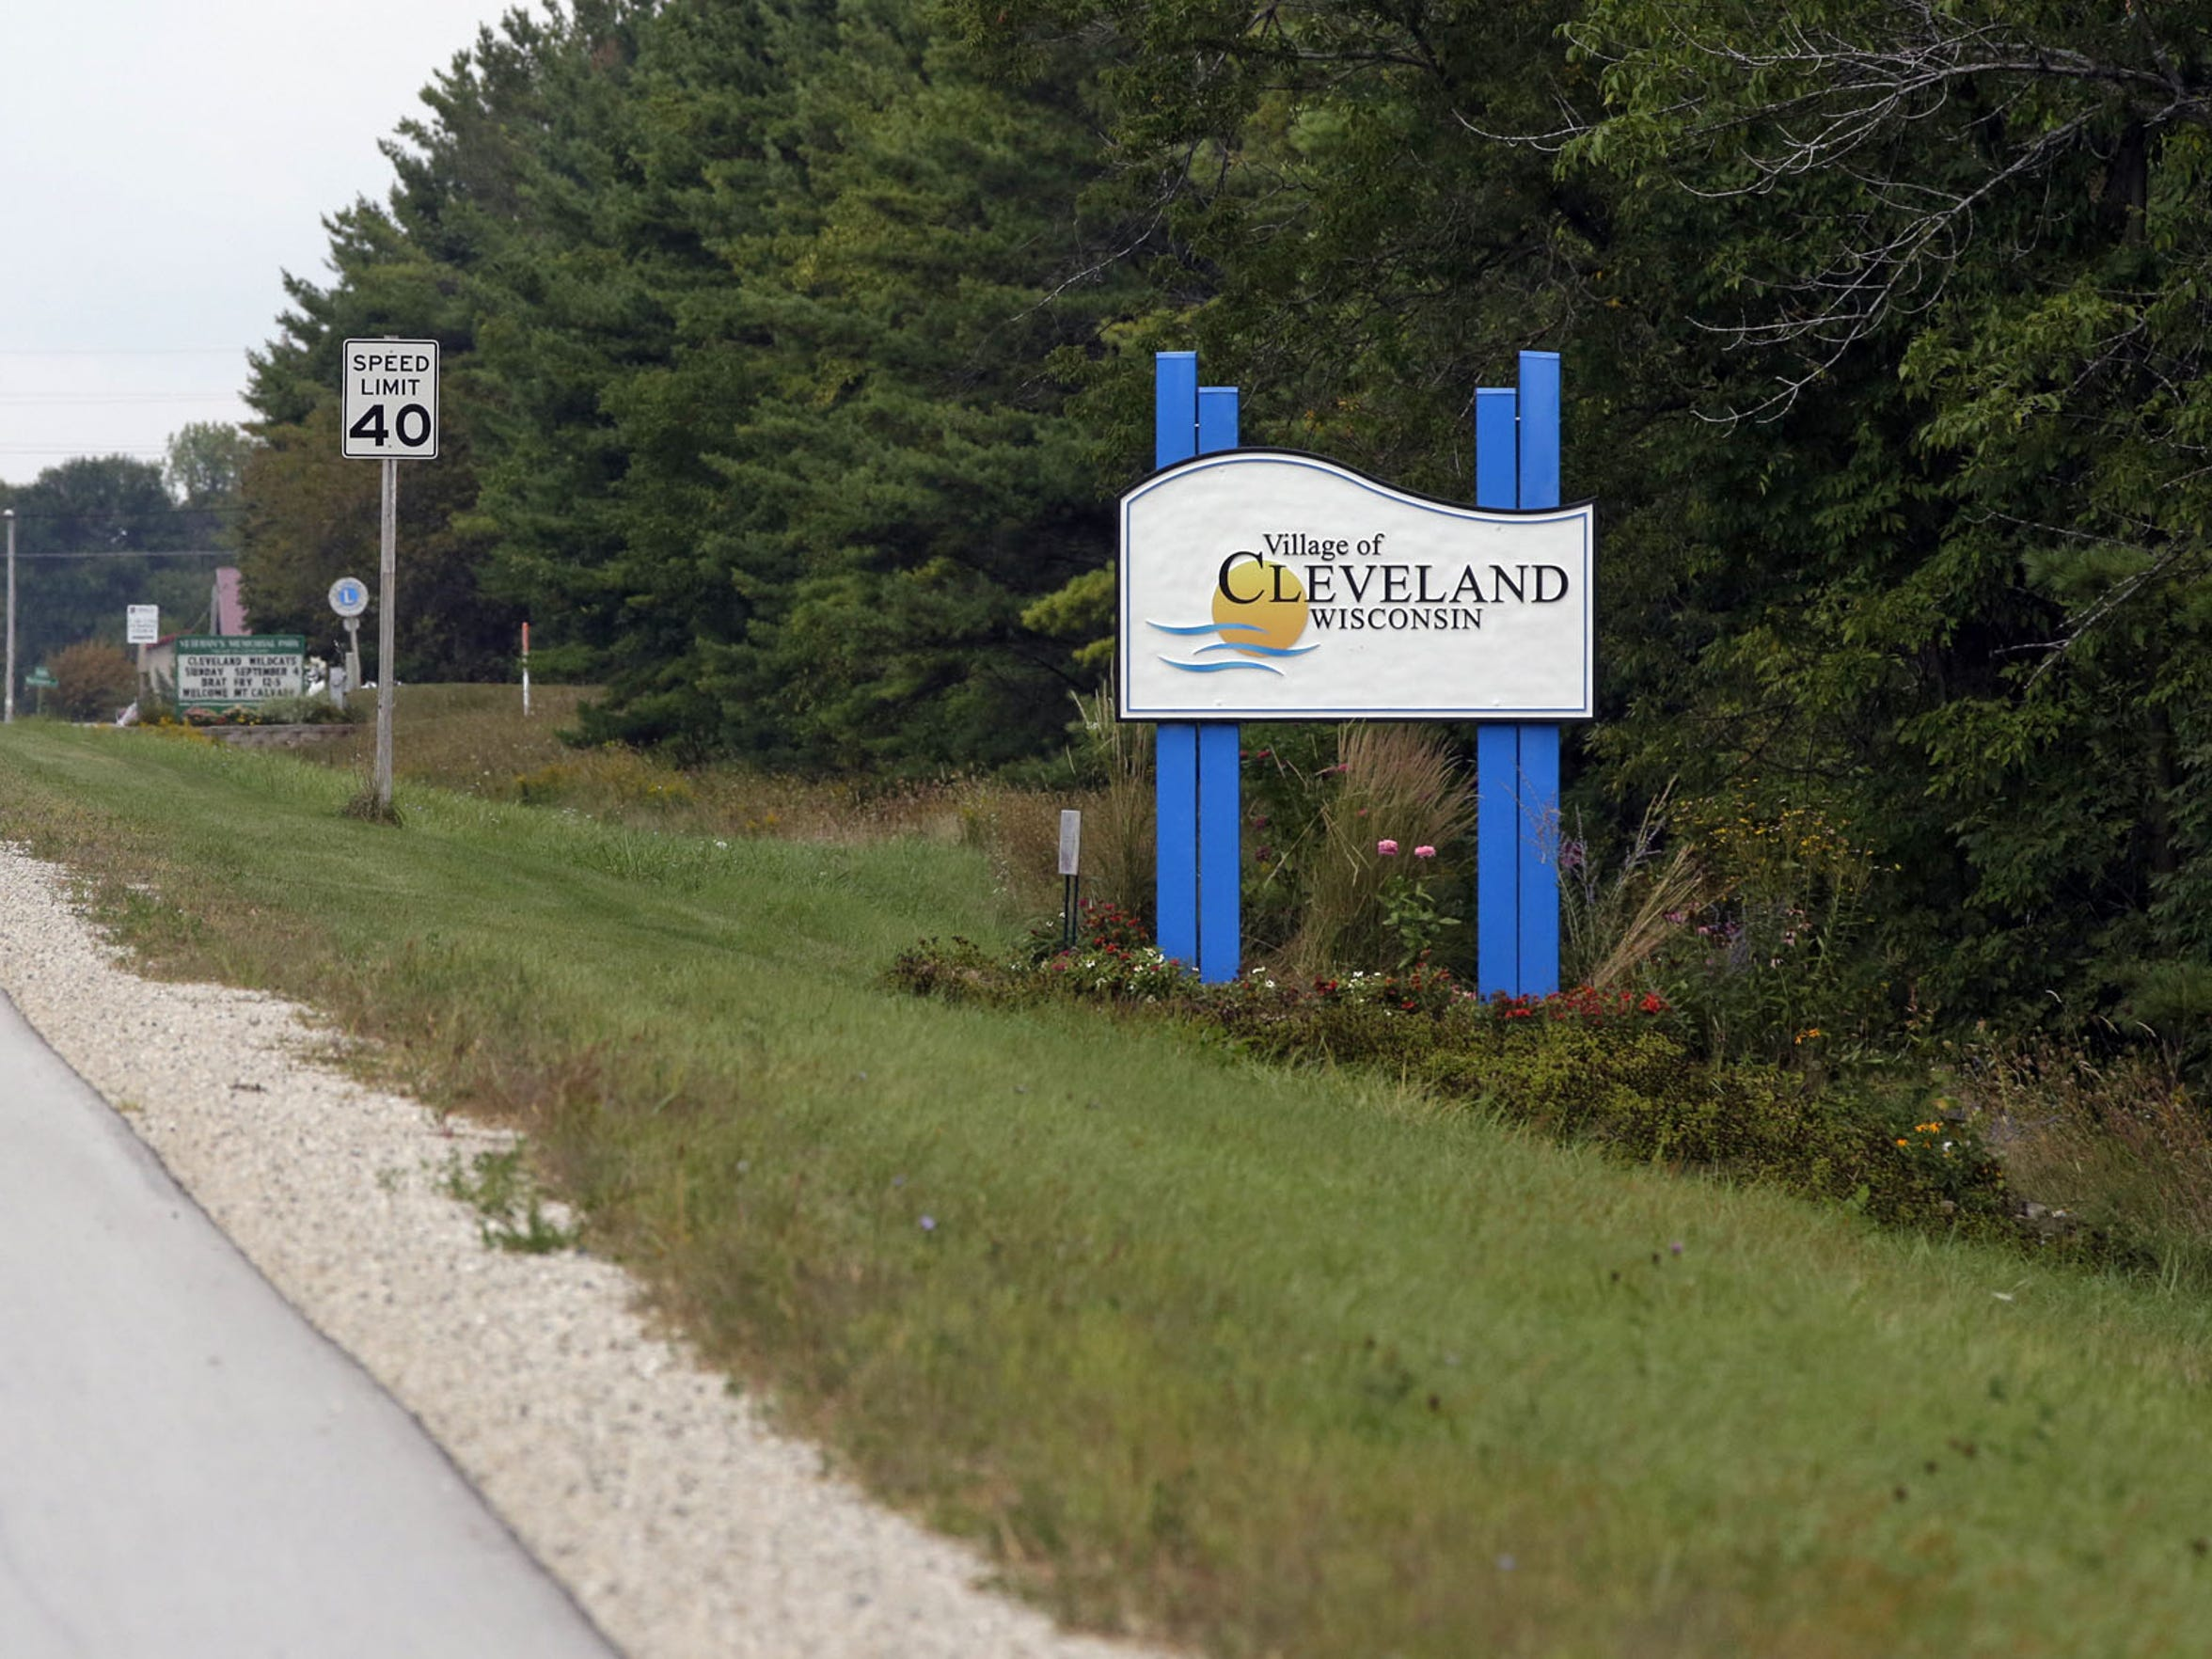 A welcoming to Cleveland sign along Dairyland Drive